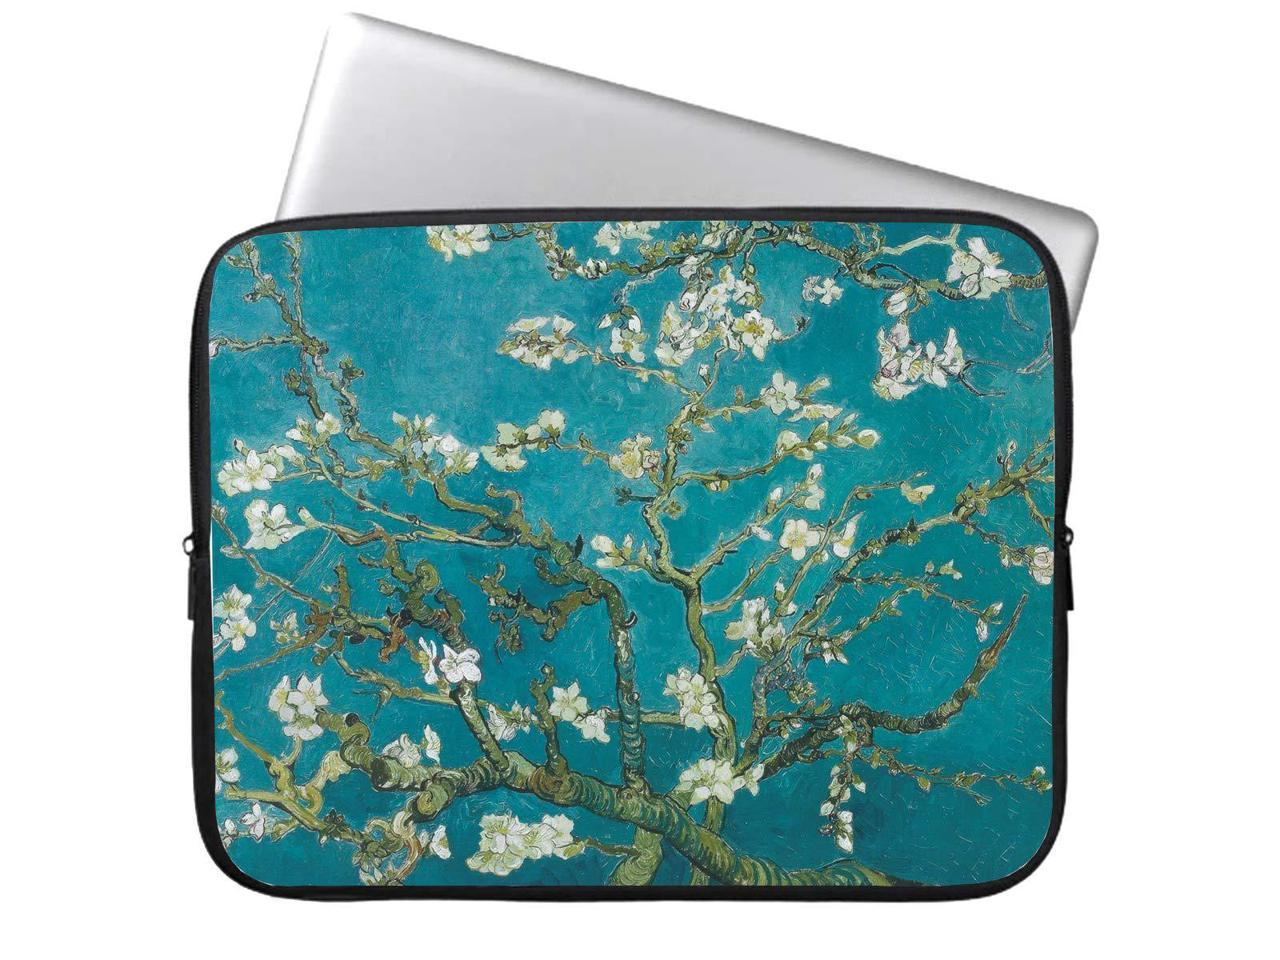 Xxh 13Inch Laptop Sleeve Case Balloon Patterns Neoprene Cover Bag Compatible MacBook Air//Pro